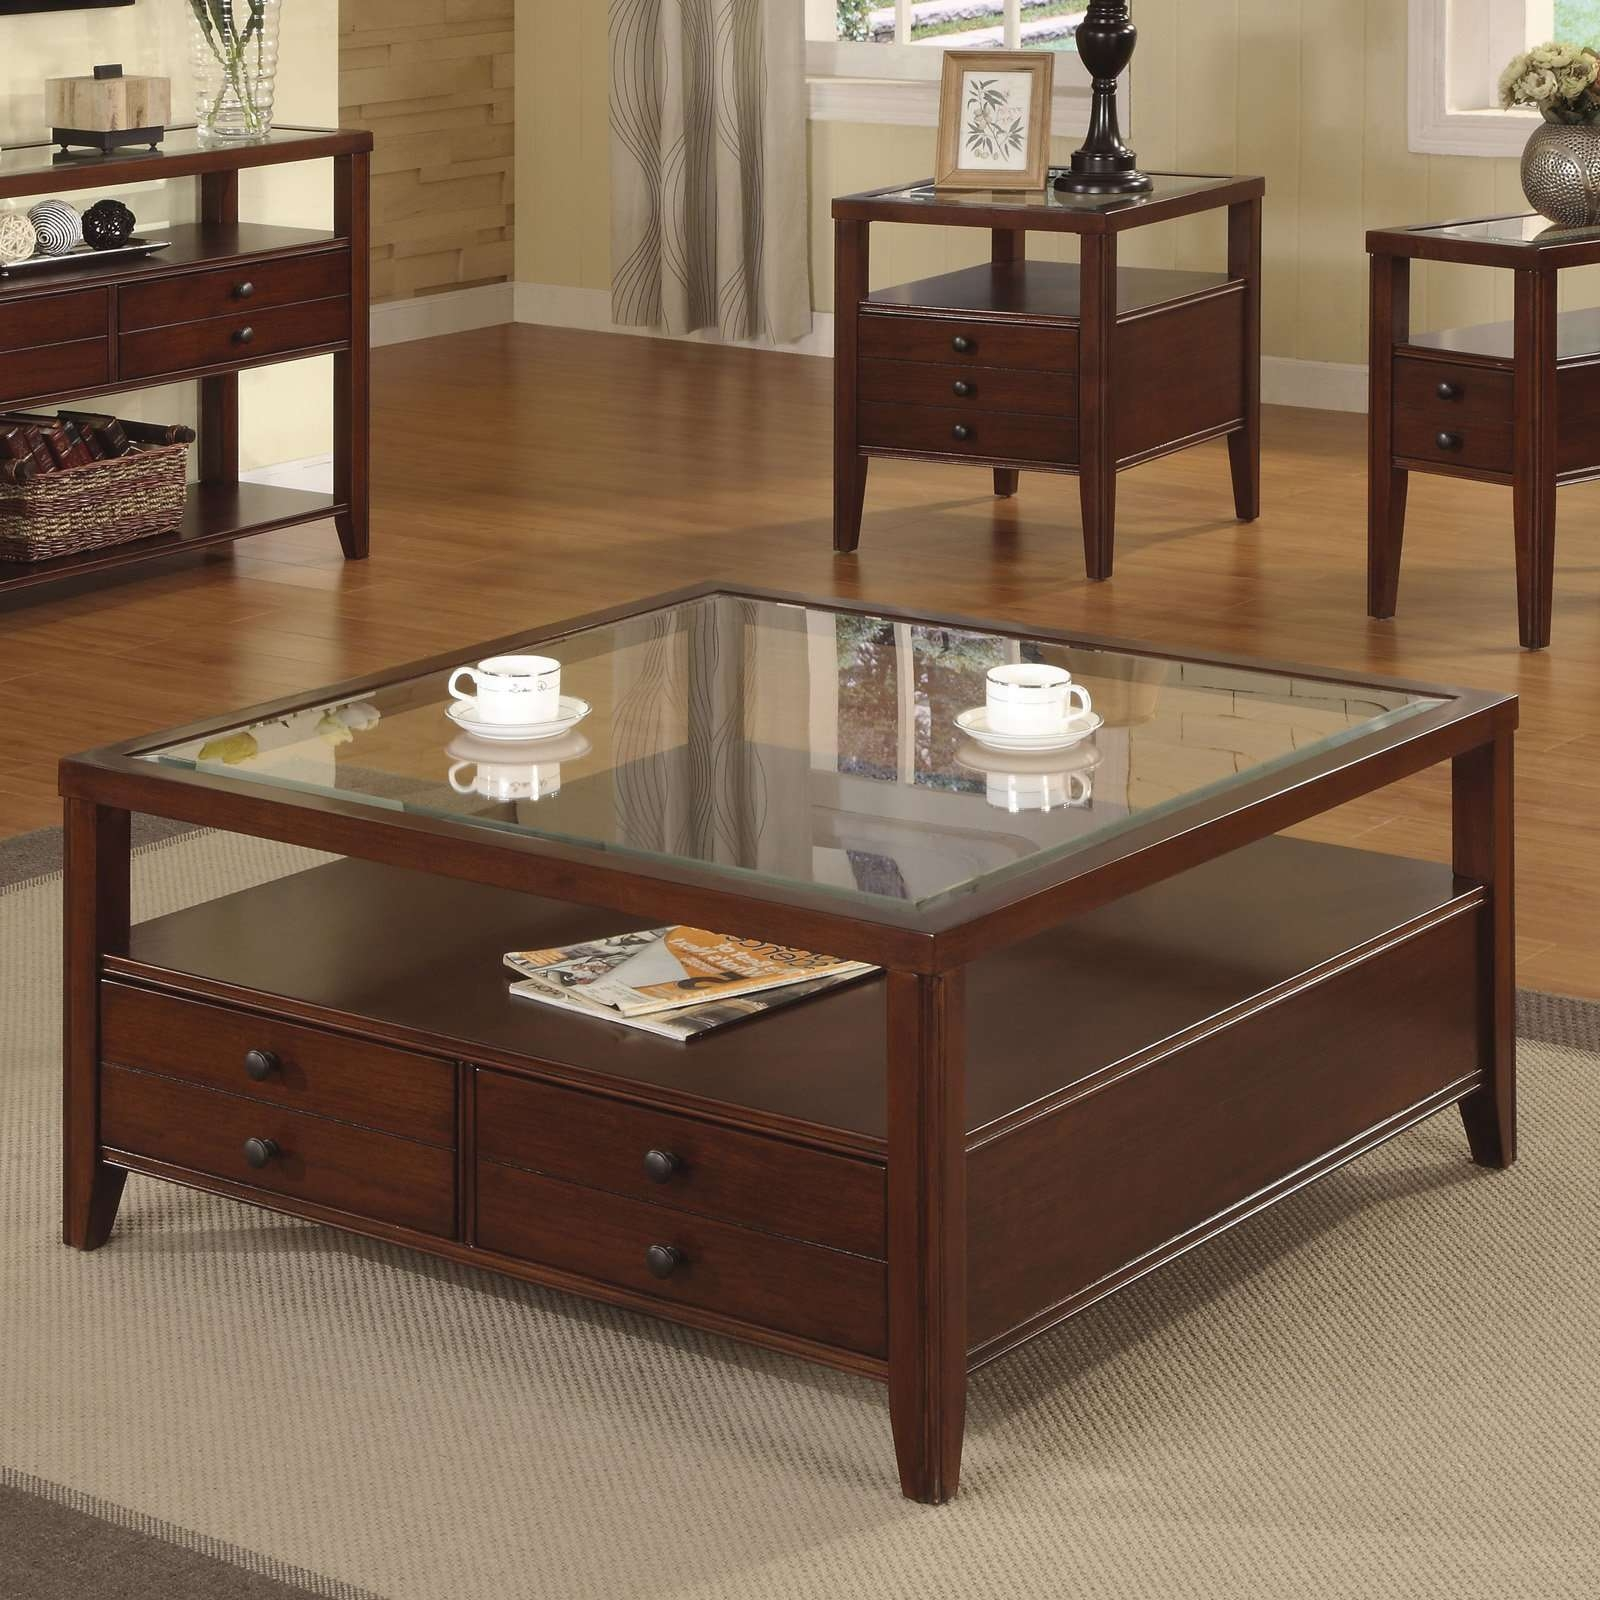 Well Liked Glass Coffee Tables With Storage With Coffee Tables : Rectangle Coffee Table With Storage Cute Of Rustic (View 19 of 20)